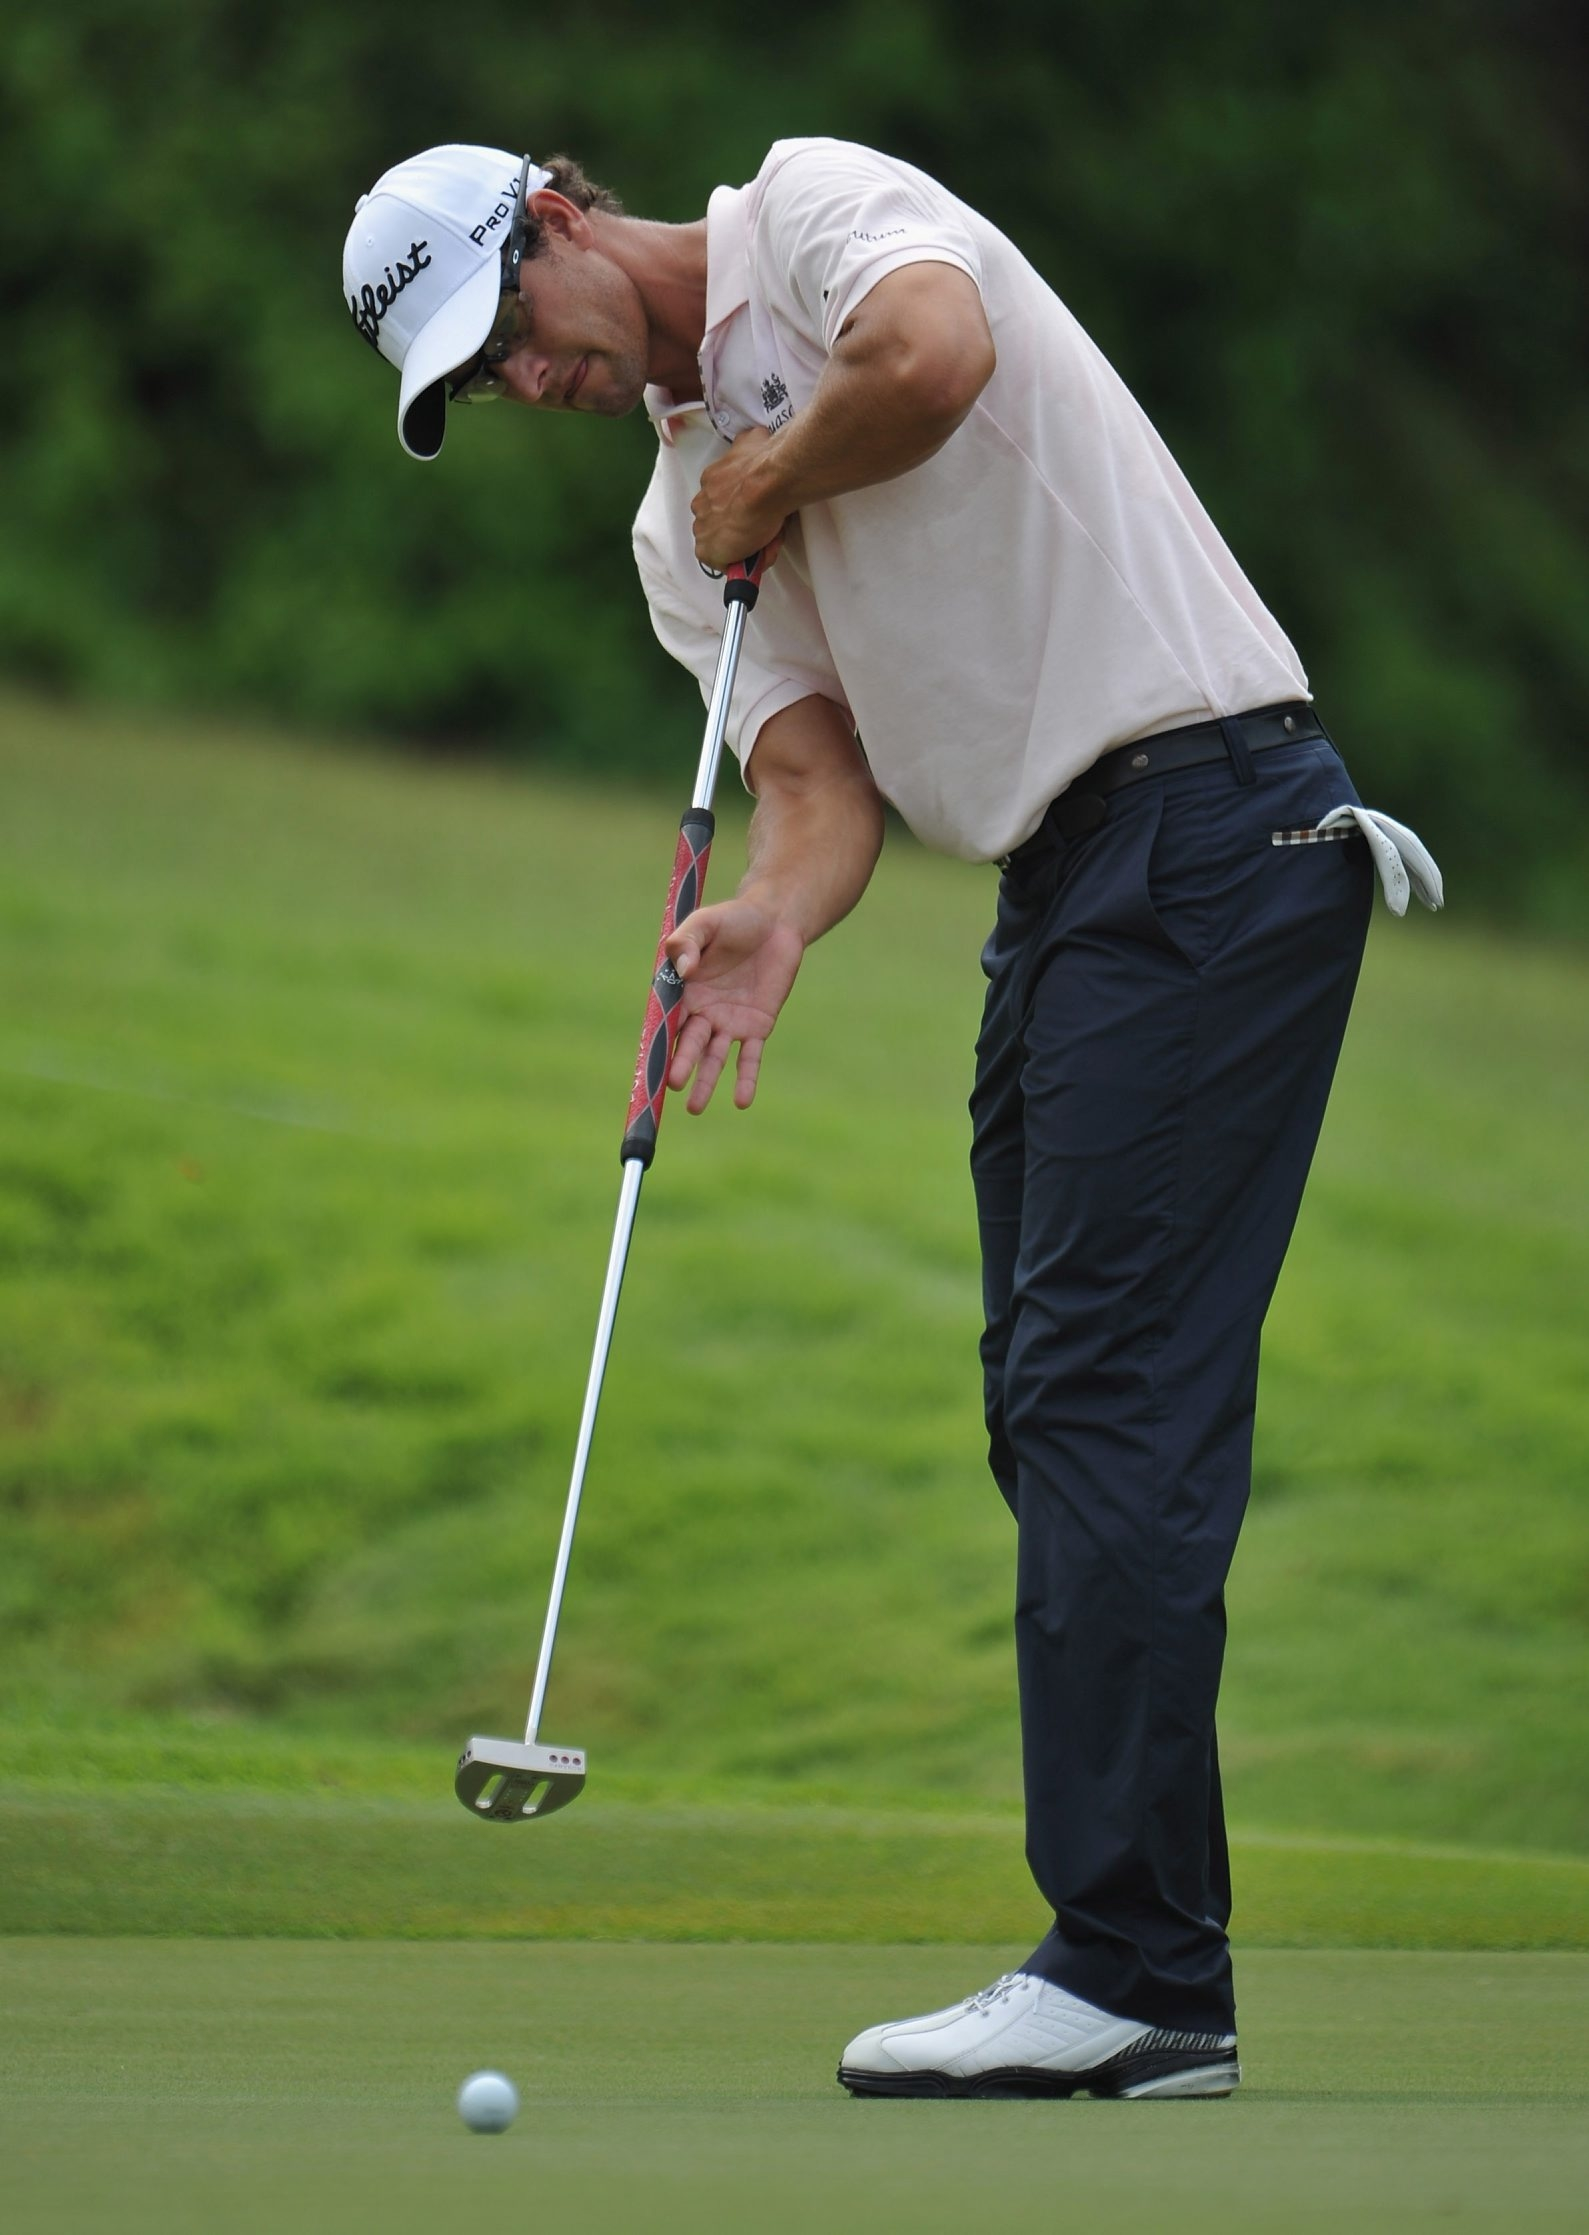 Adam Scott of Australia uses the long putter at this year's Barclays Singapore Open.